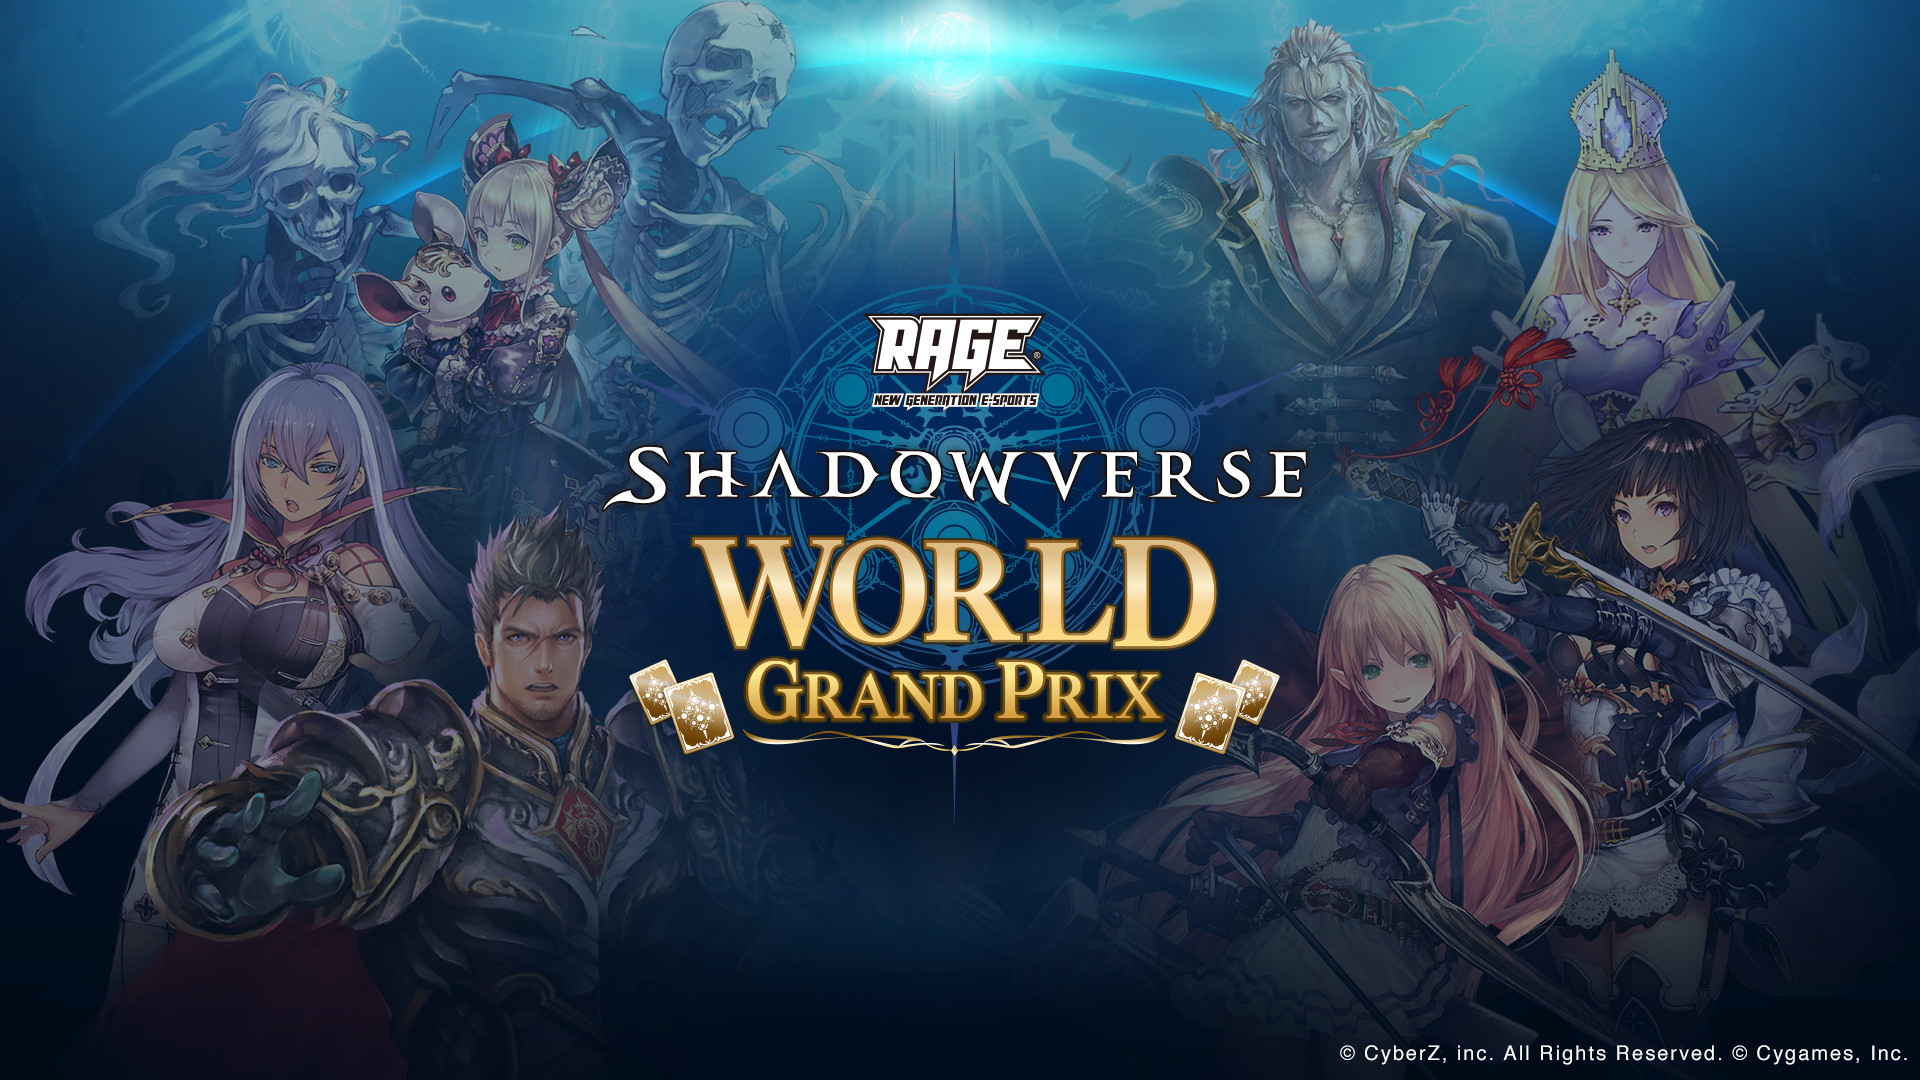 RAGE Shadowverse World Grand Prix GRAND FINALS